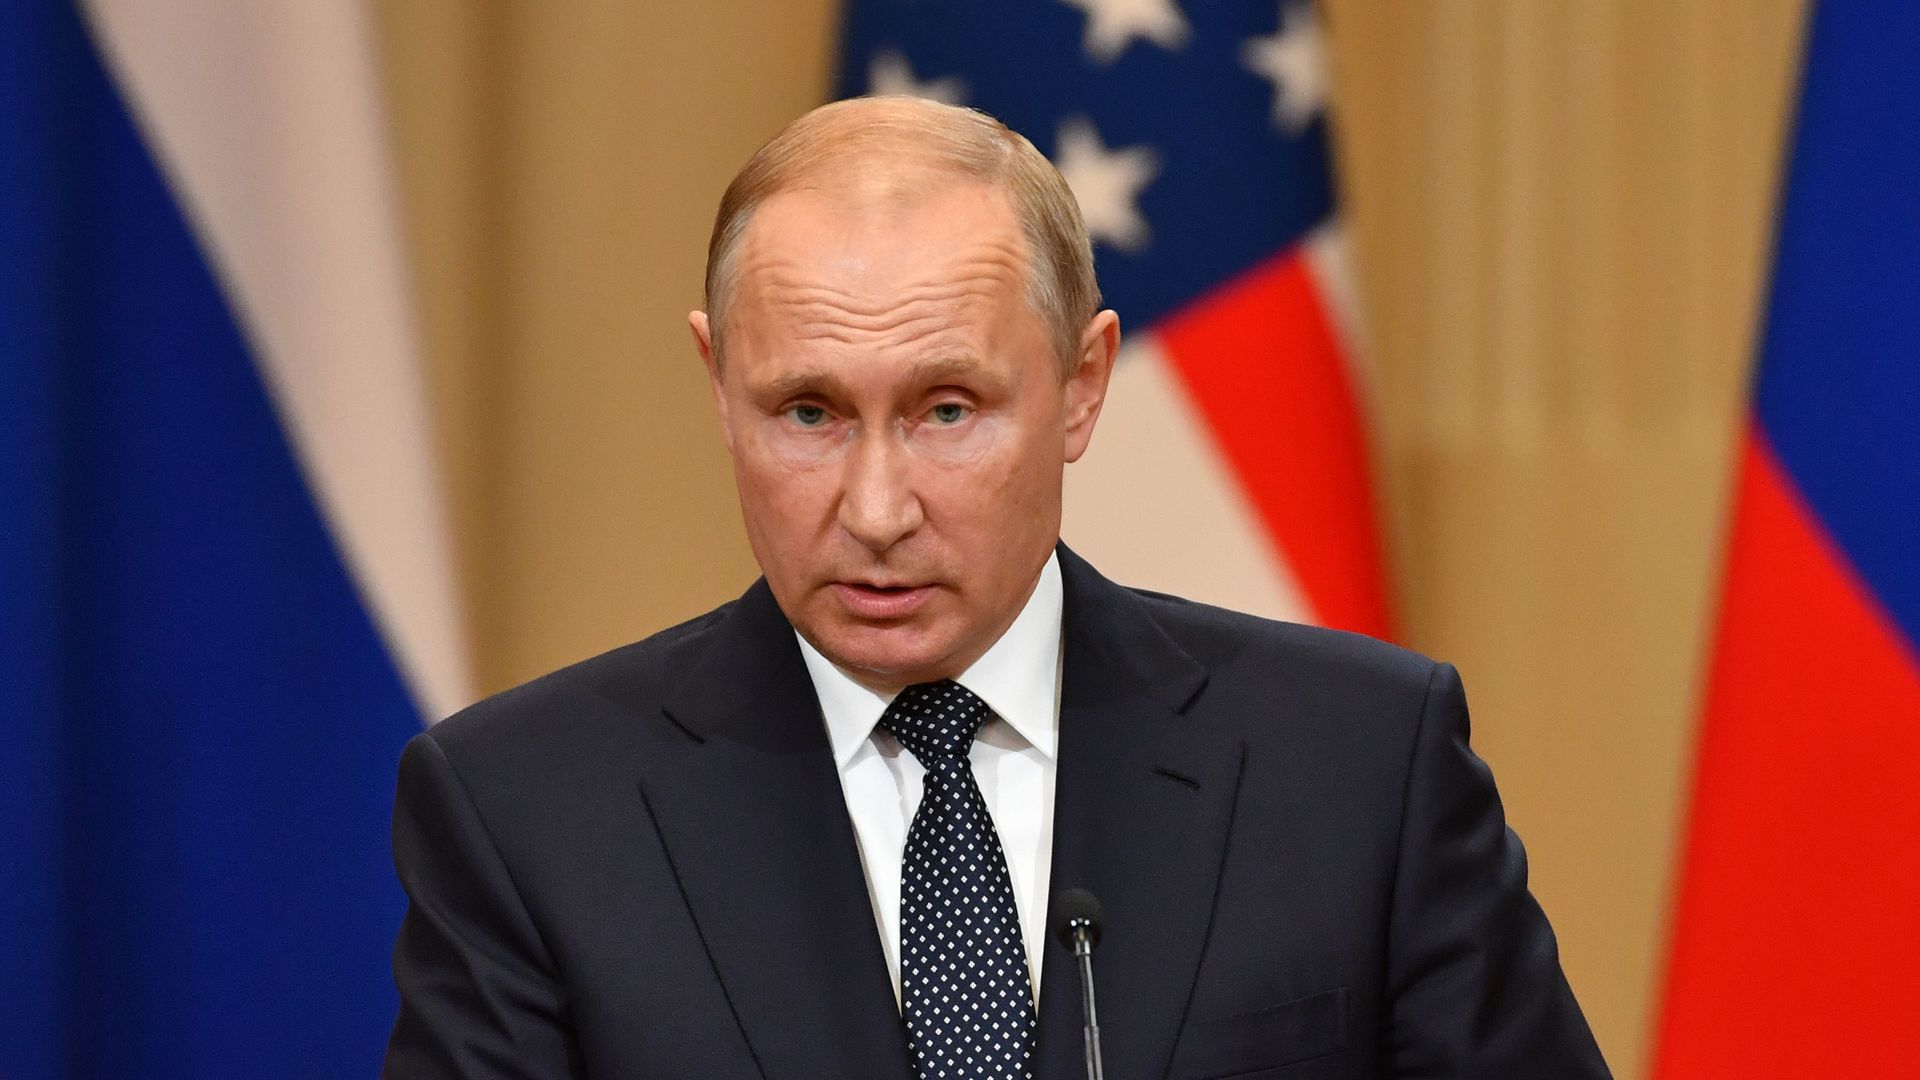 Vladimir Putin looks caught off guard, standing at a podium before a U.S. flag.